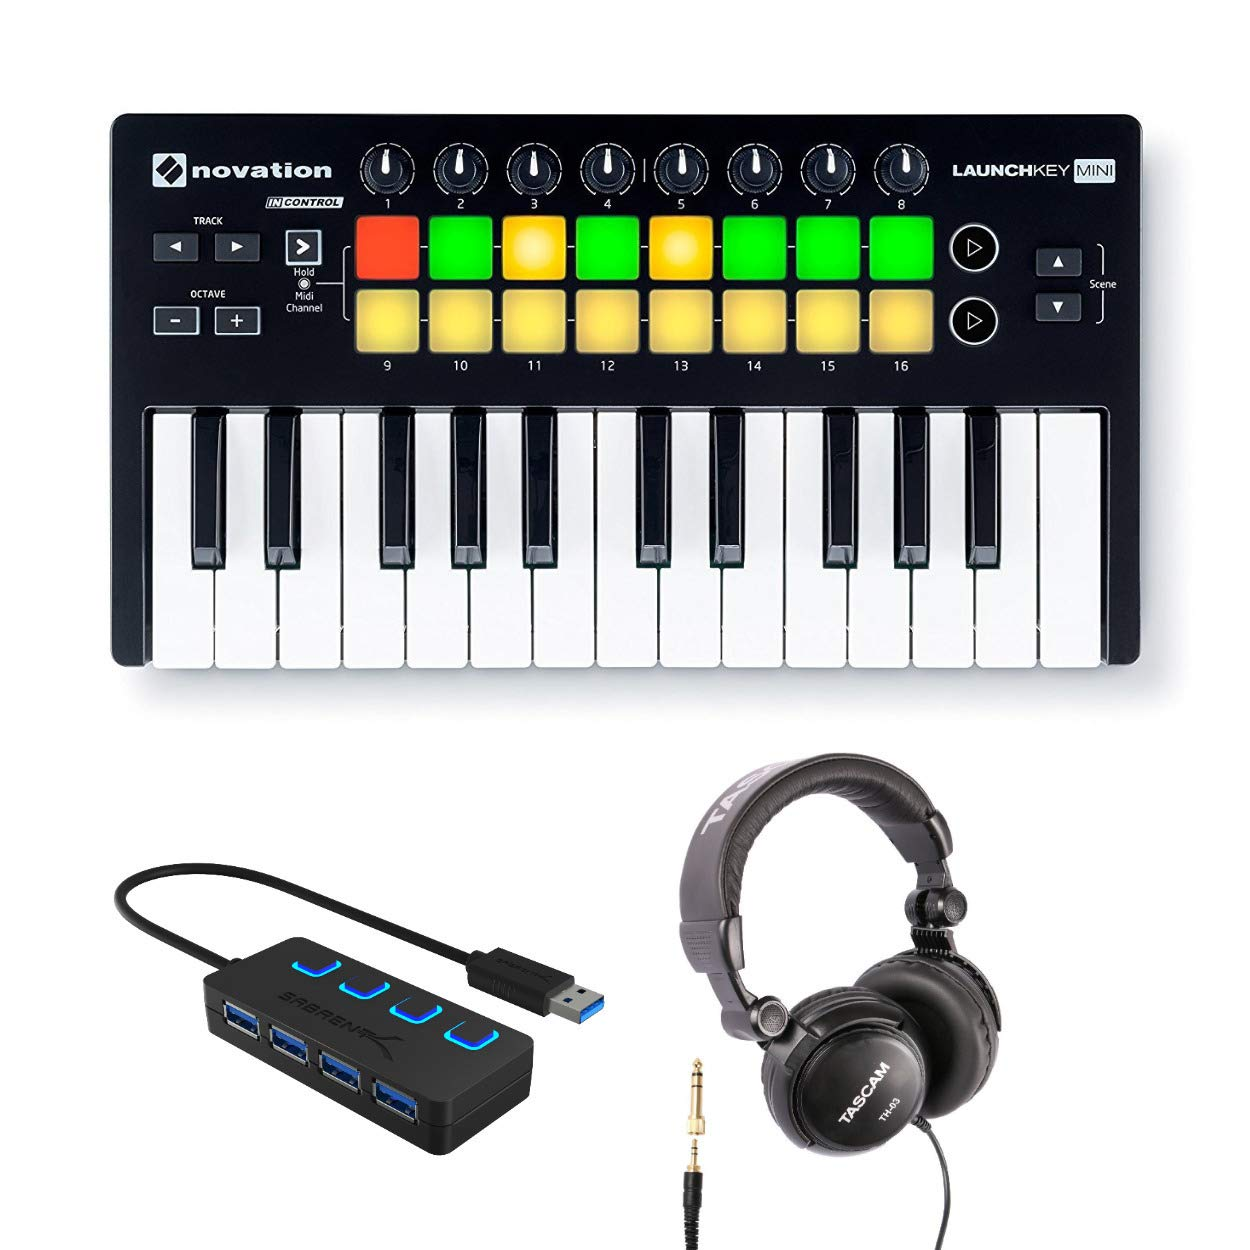 Novation Launchkey Mini 25-Note USB Keyboard Controller MK2 with Headphones and 4-Port 3.0 USB HUB by Novation